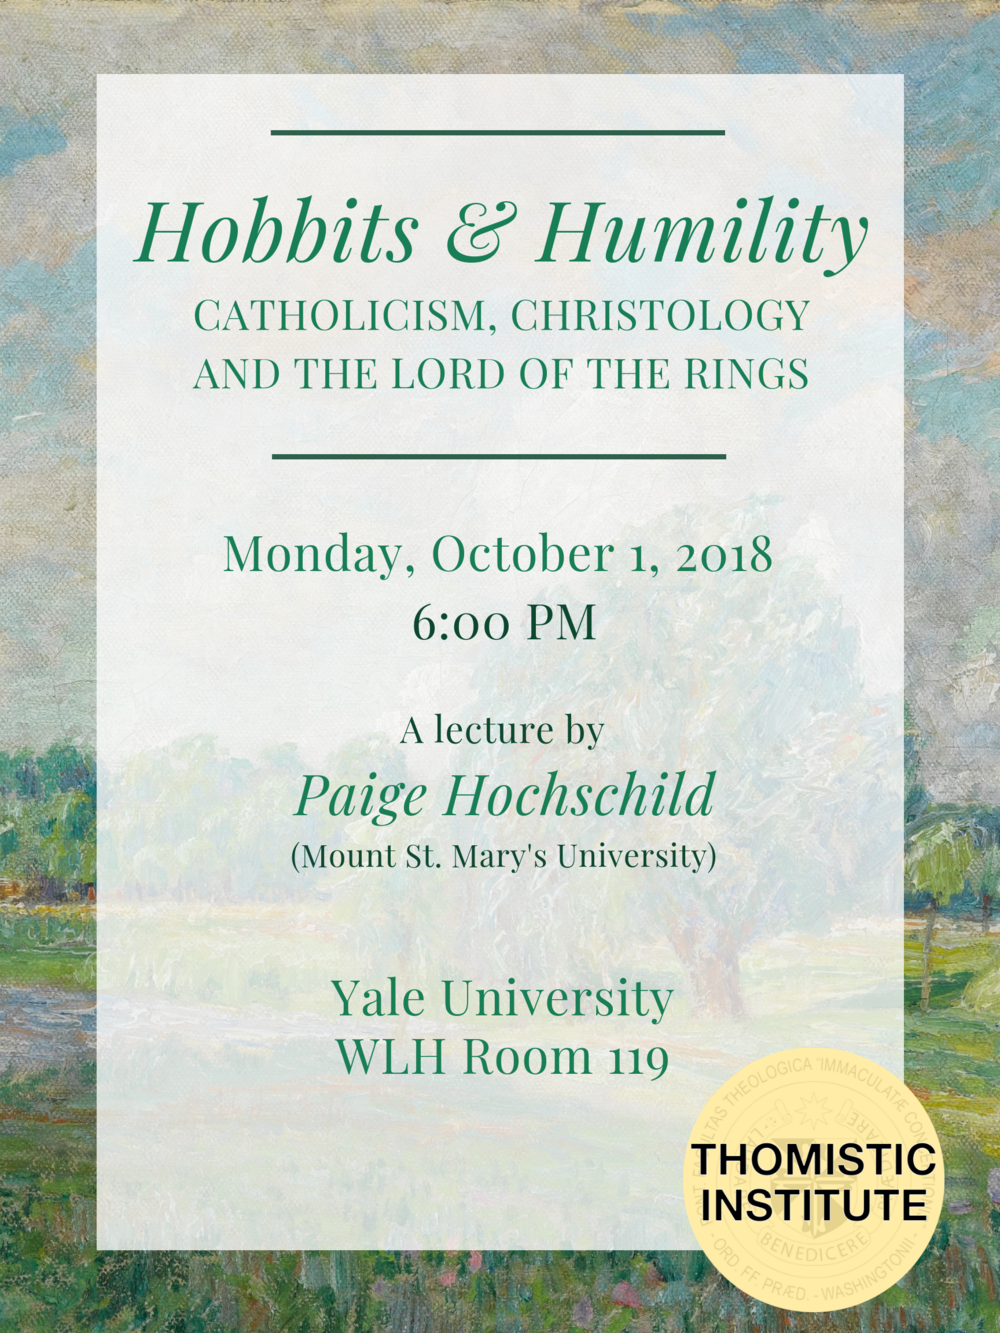 10.1.18 Yale Event - Hobbits and Humility, Hochschild.png